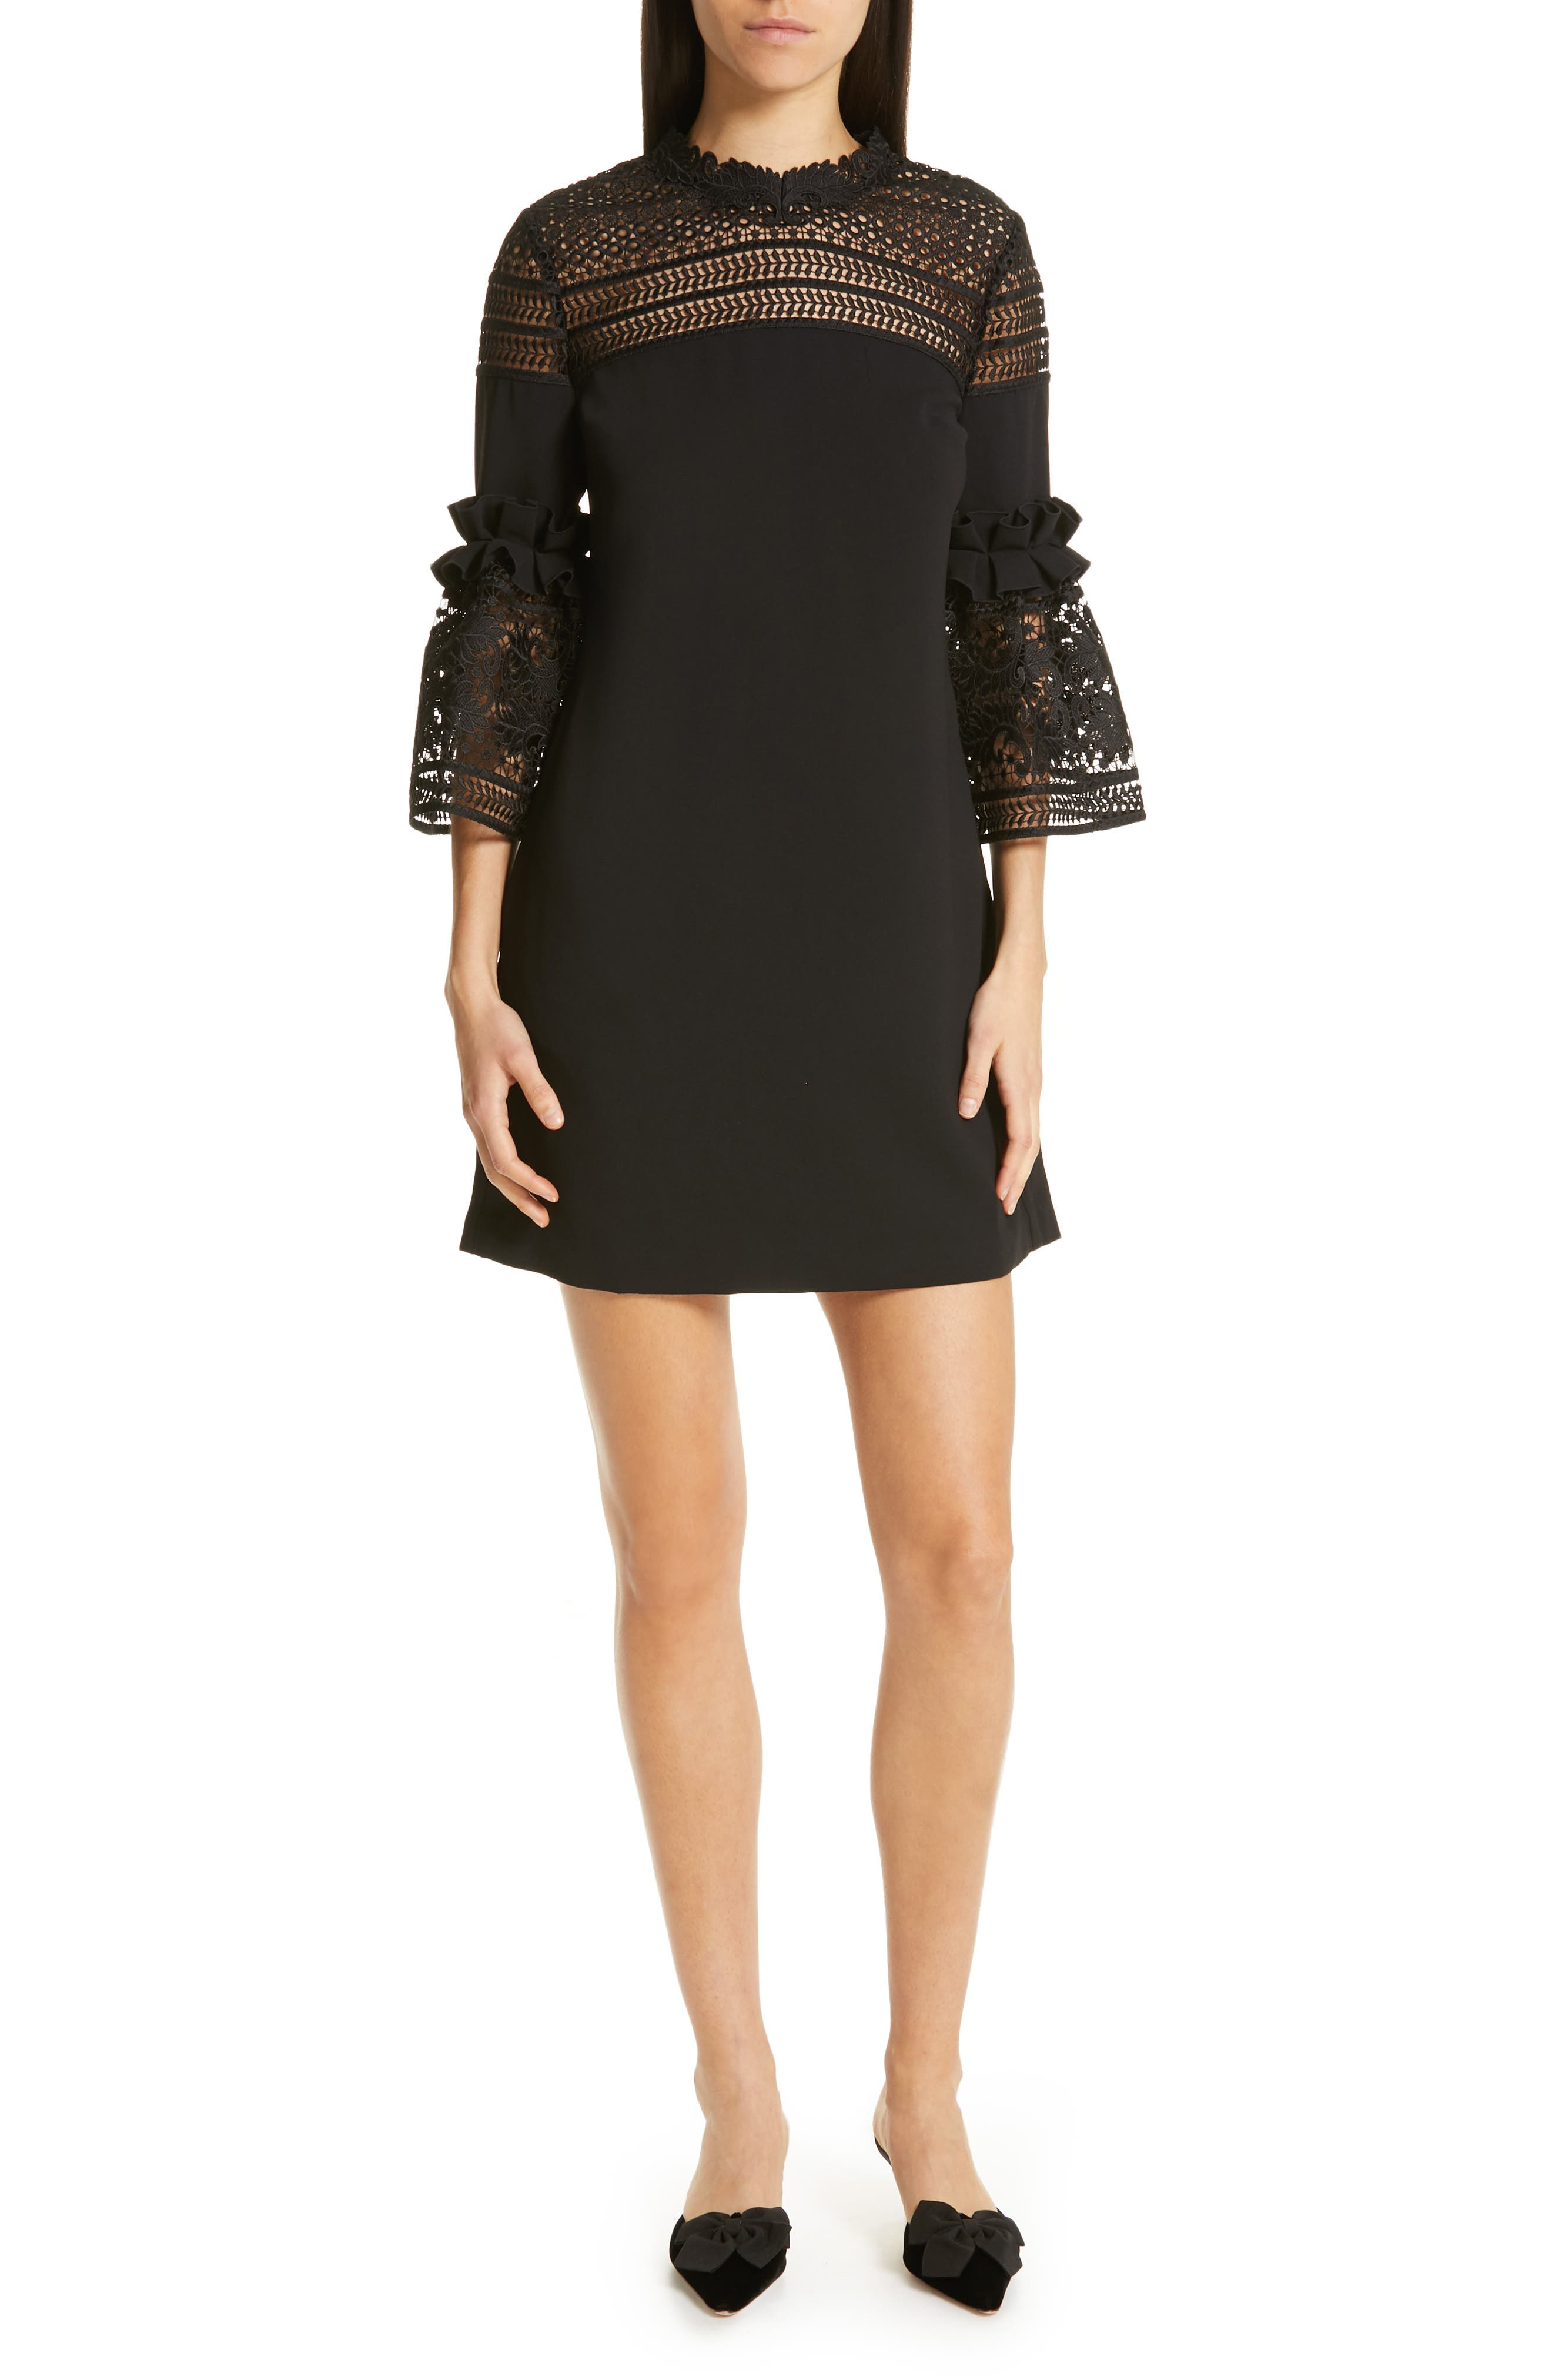 TED BAKER LONDON, Lace Panel Bell Sleeve Tunic Dress, Main thumbnail 1, color, BLACK